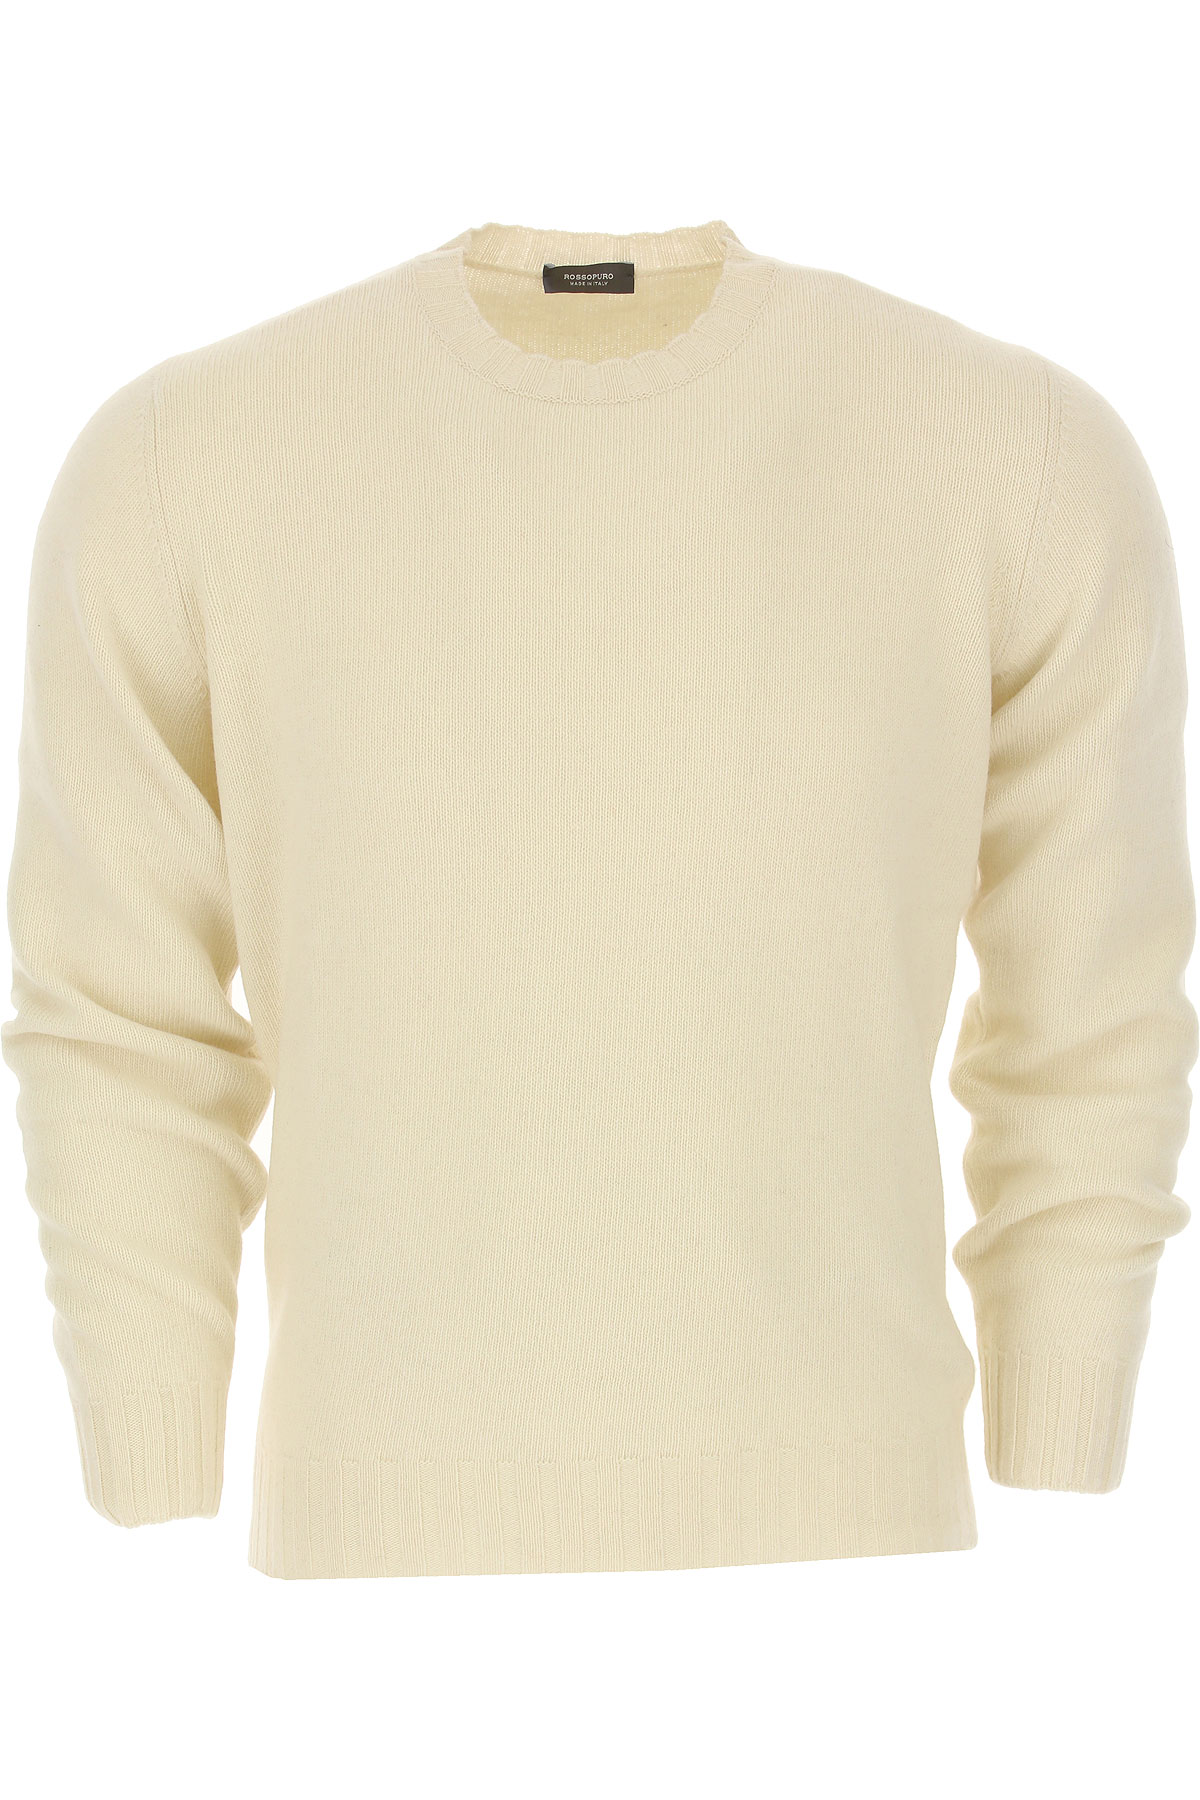 Image of Rossopuro Sweater for Men Jumper, Cream, Wool, 2017, L M S XL XXL